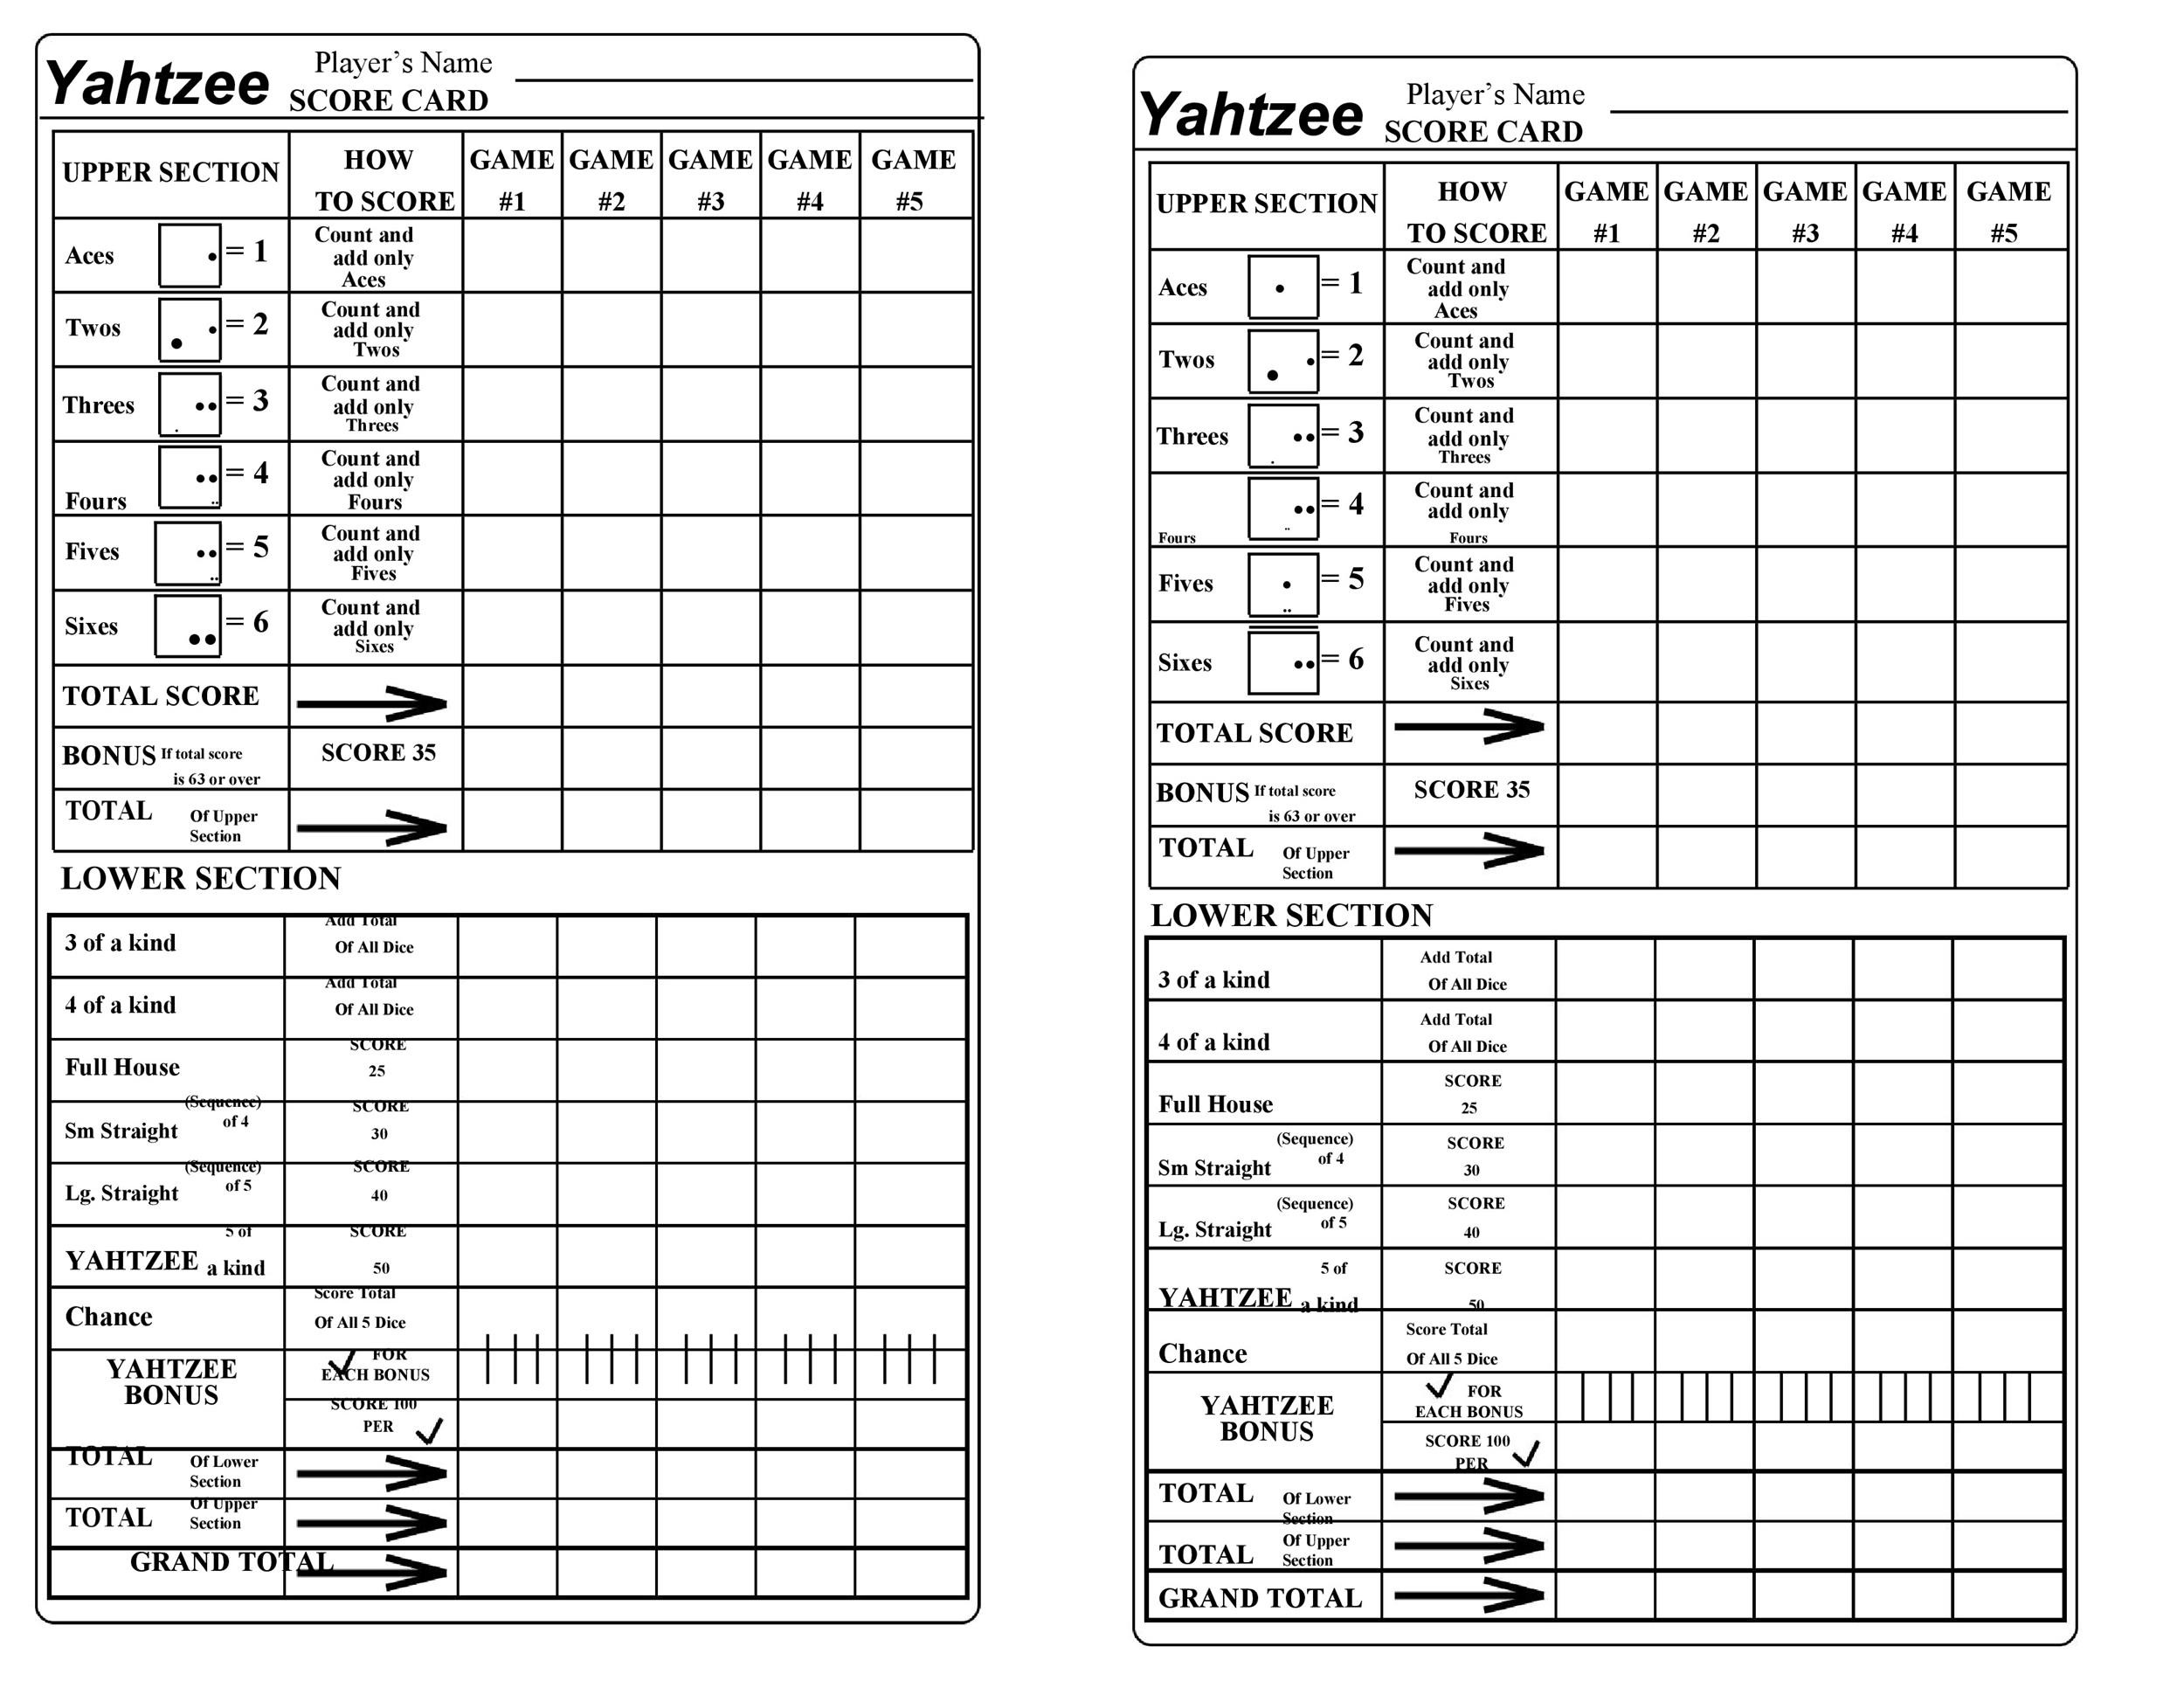 image regarding Yahtzee Printable Score Sheets identify 28 Printable Yahtzee Rating Sheets Playing cards (101% Totally free) ᐅ